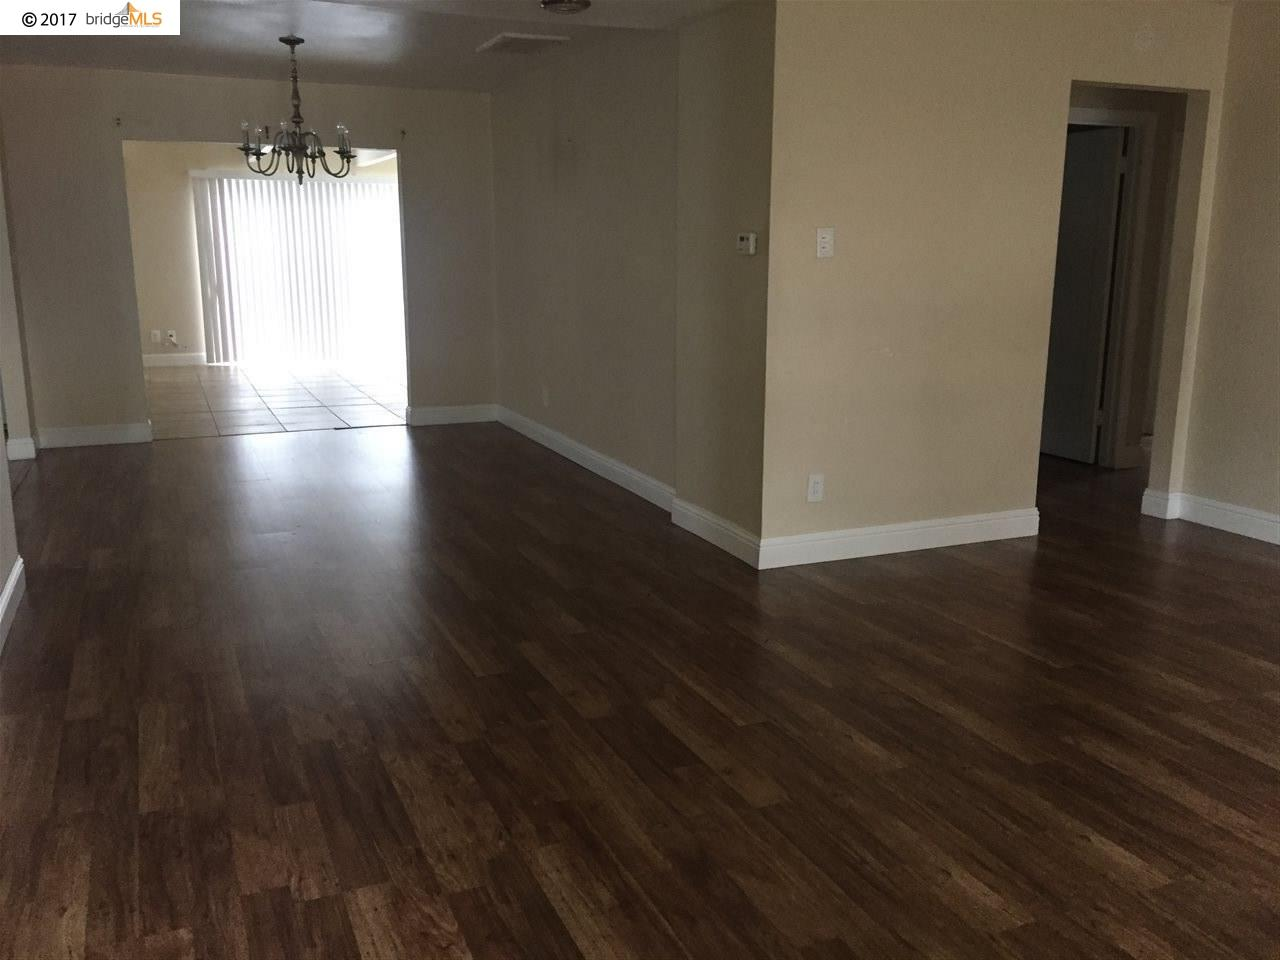 Single Family Home for Rent at 2716 Dolores Street 2716 Dolores Street Antioch, California 94509 United States